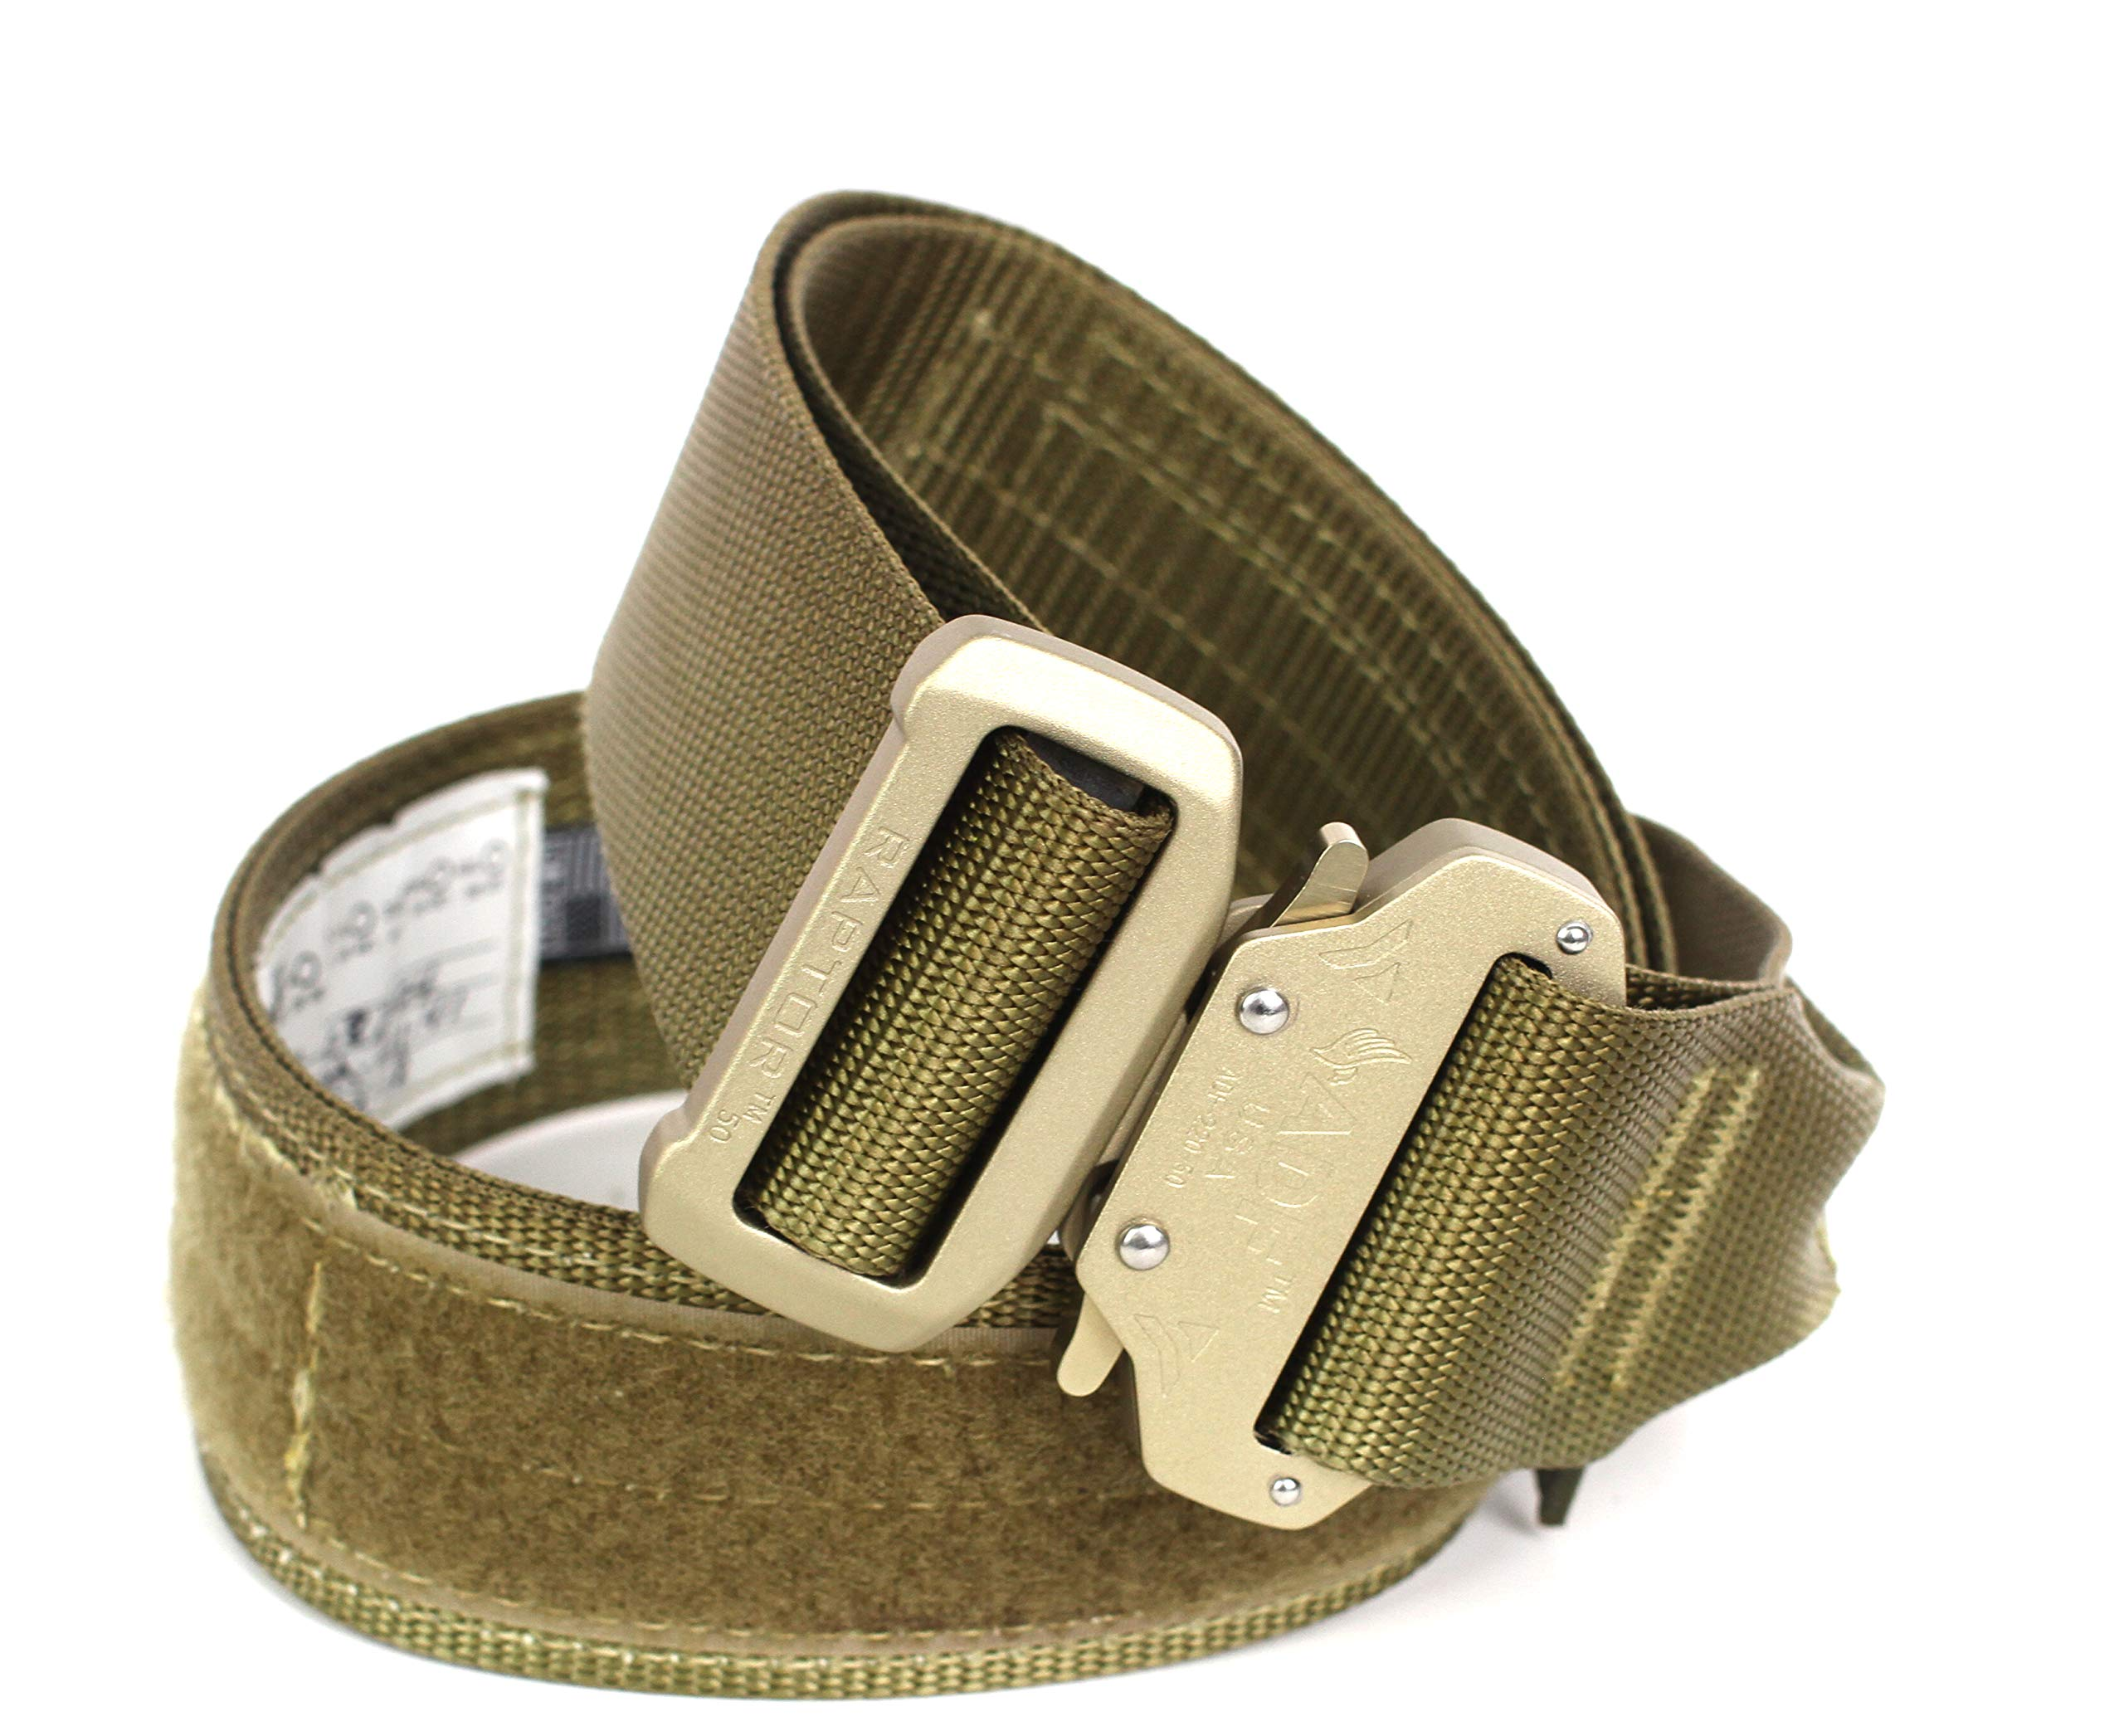 Fusion Tactical Military Police Riggers Belt Coyote Brown Medium 33-38''/2'' Wide